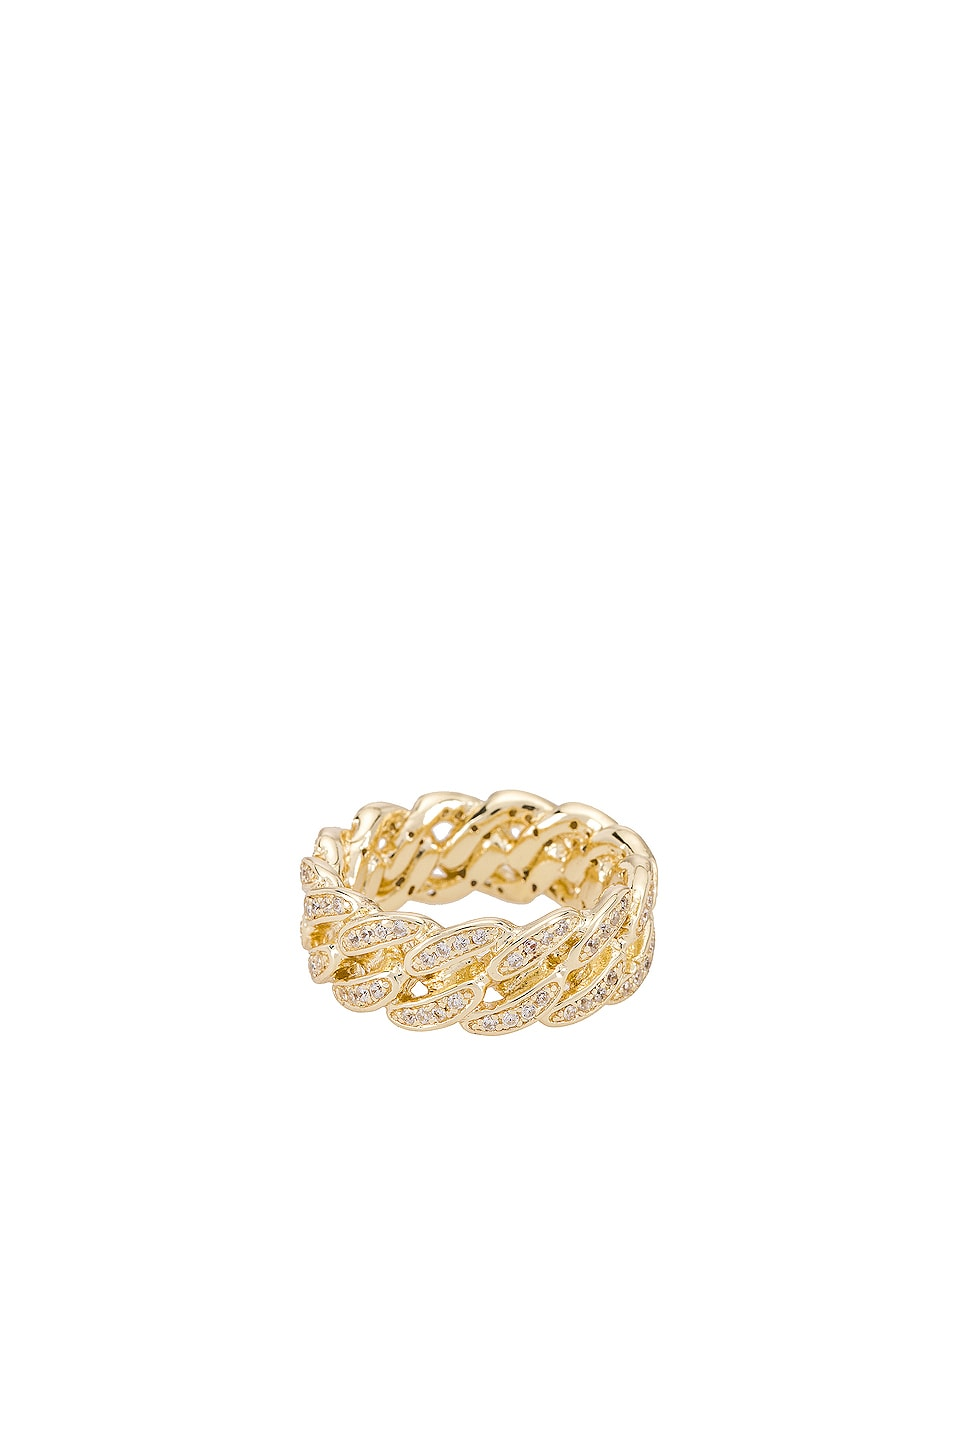 The M Jewelers NY The Iced Cuban Link II Ring in Gold